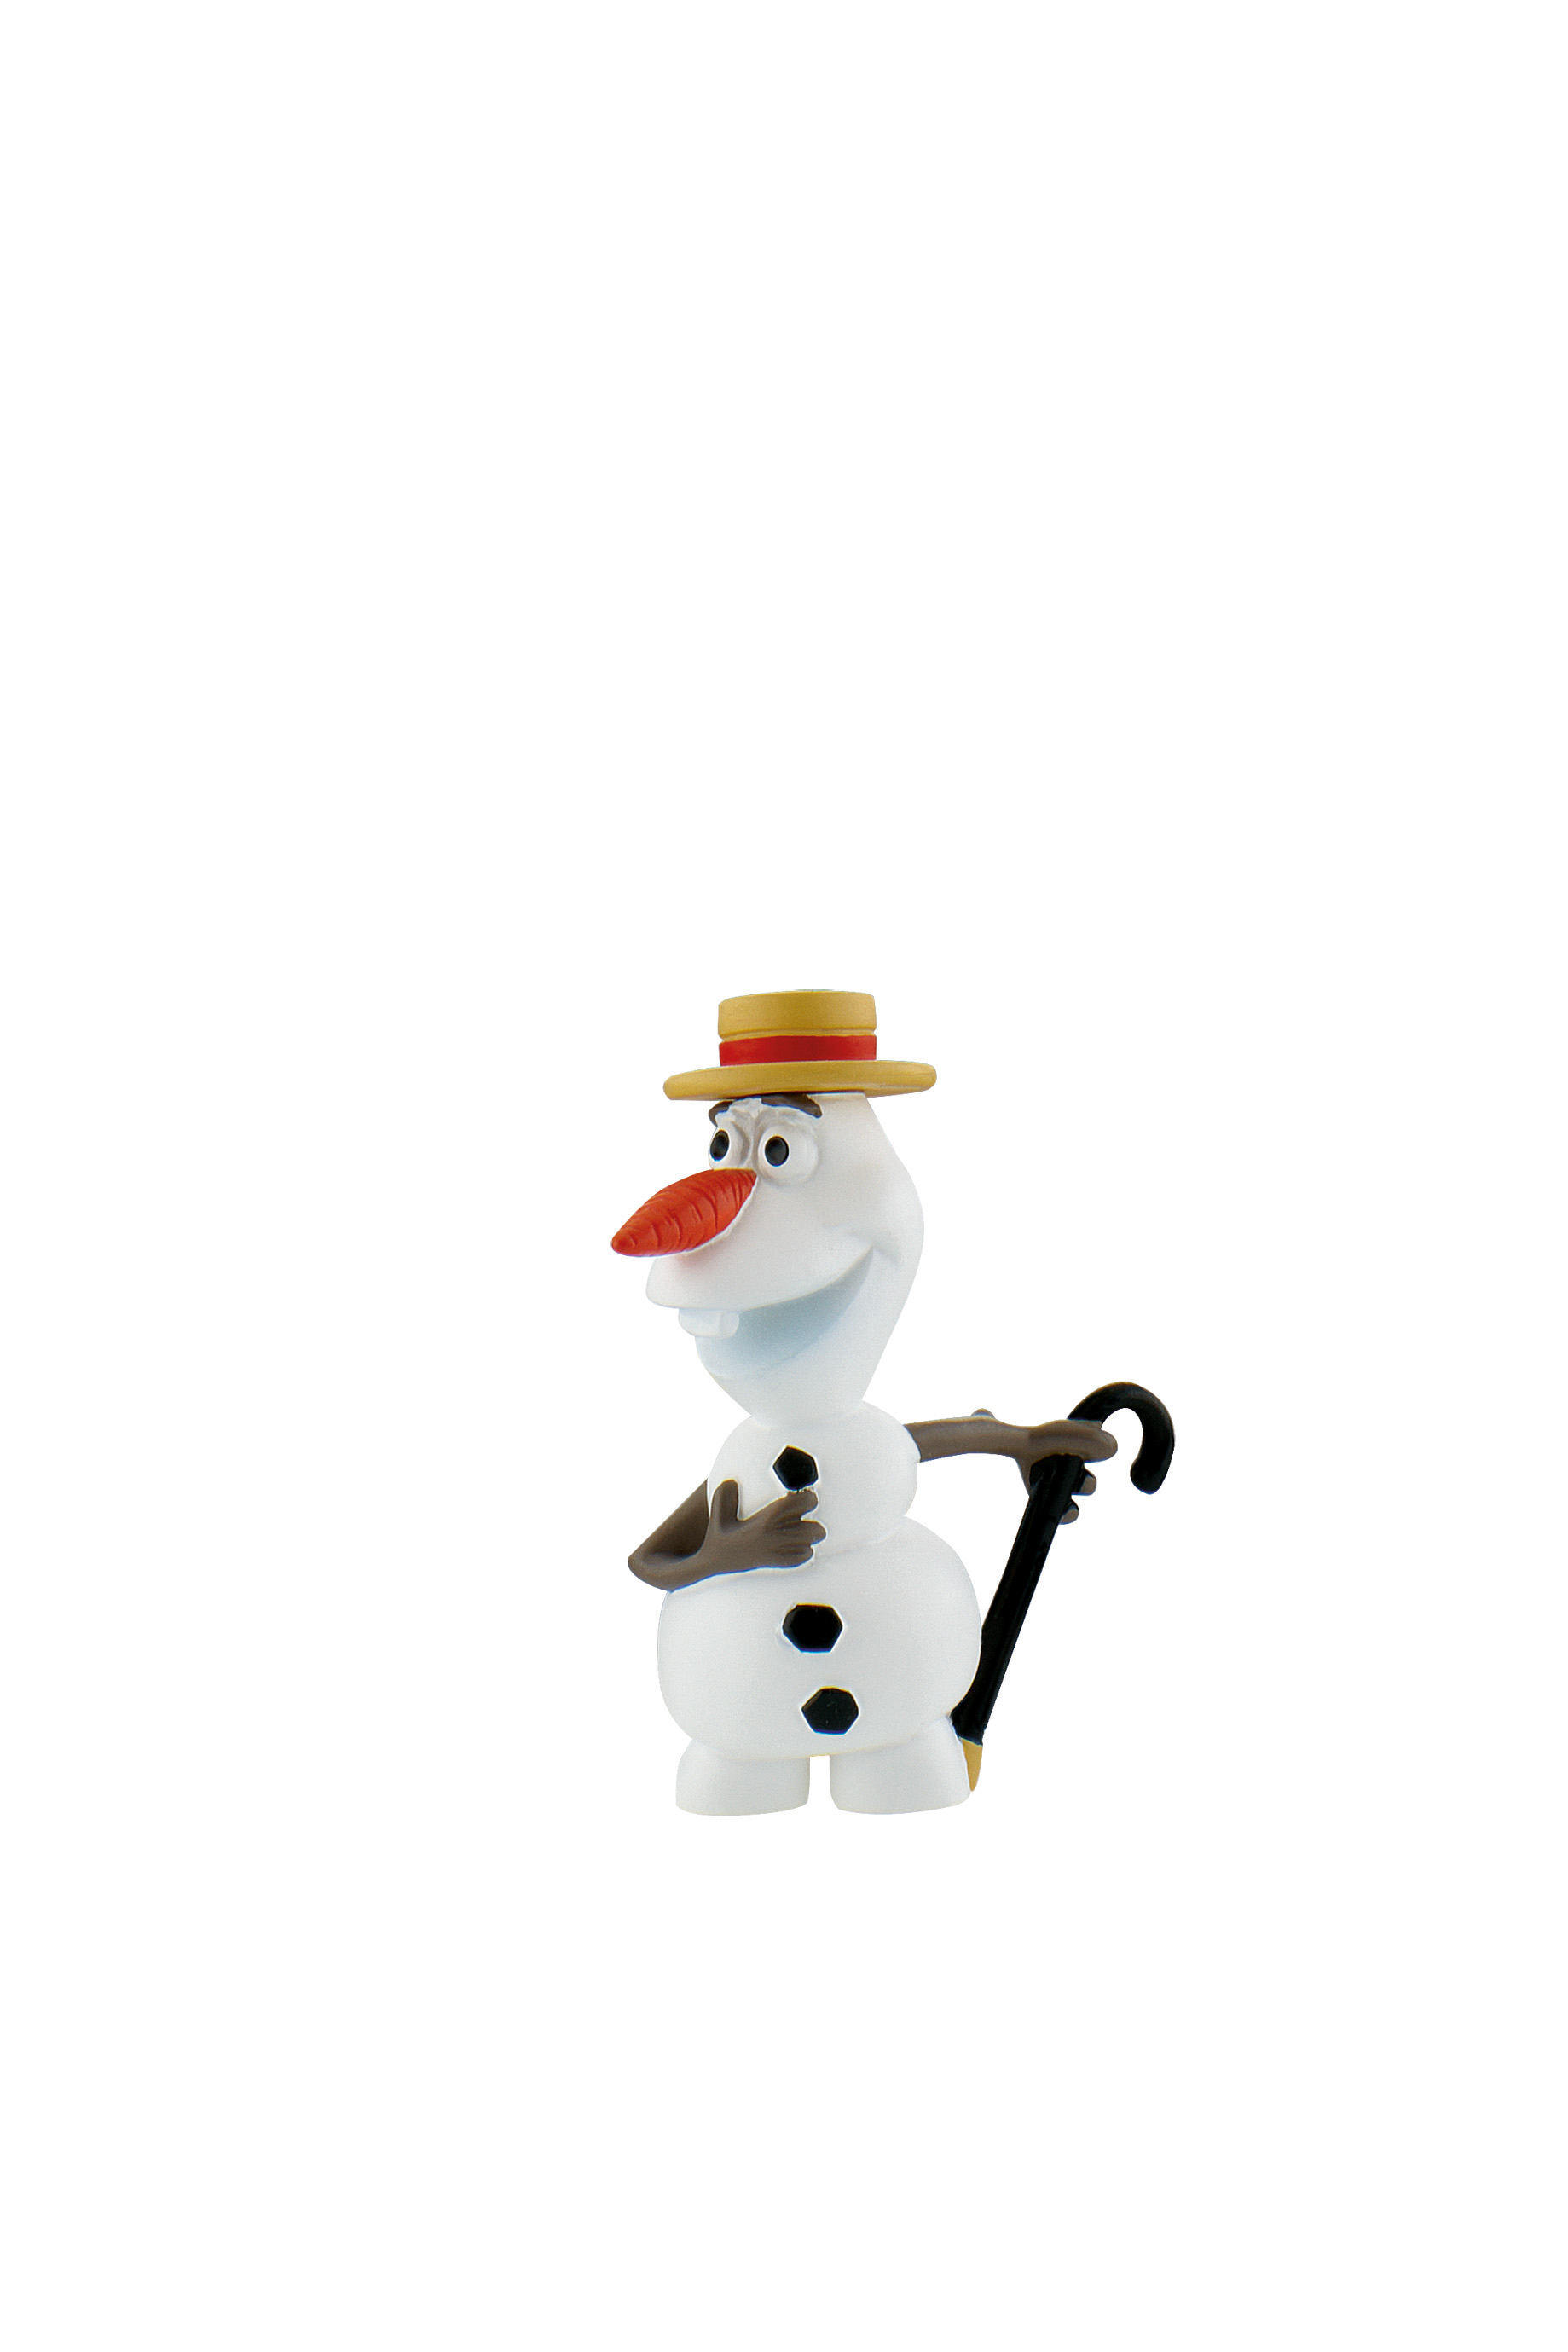 Figurine La Reine Des Neiges Disney - Olaf - 6 cm